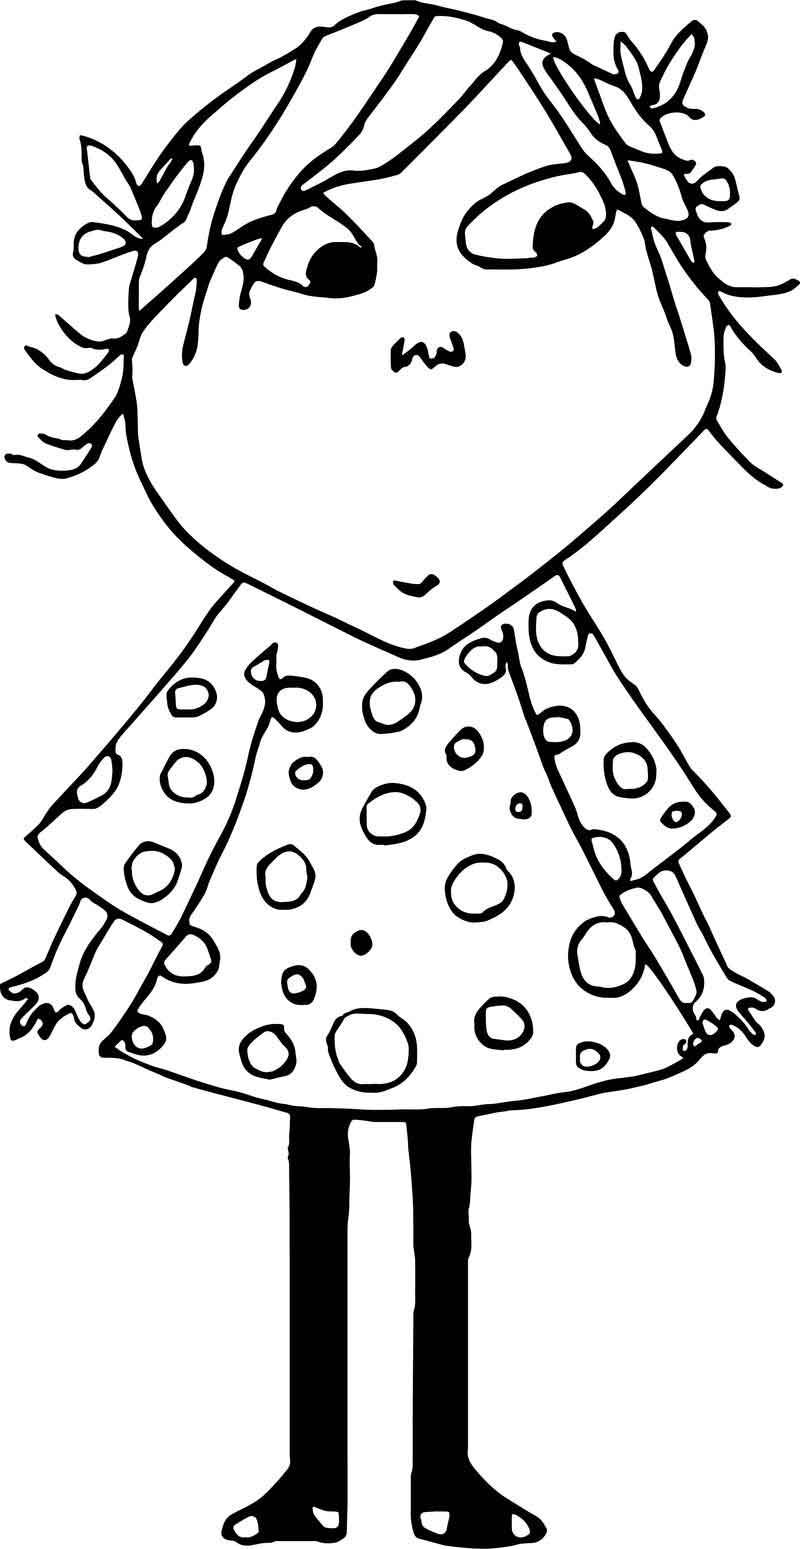 Lola Girl Coloring Page Coloring Pages For Girls Coloring Pages Coloring Pages For Kids